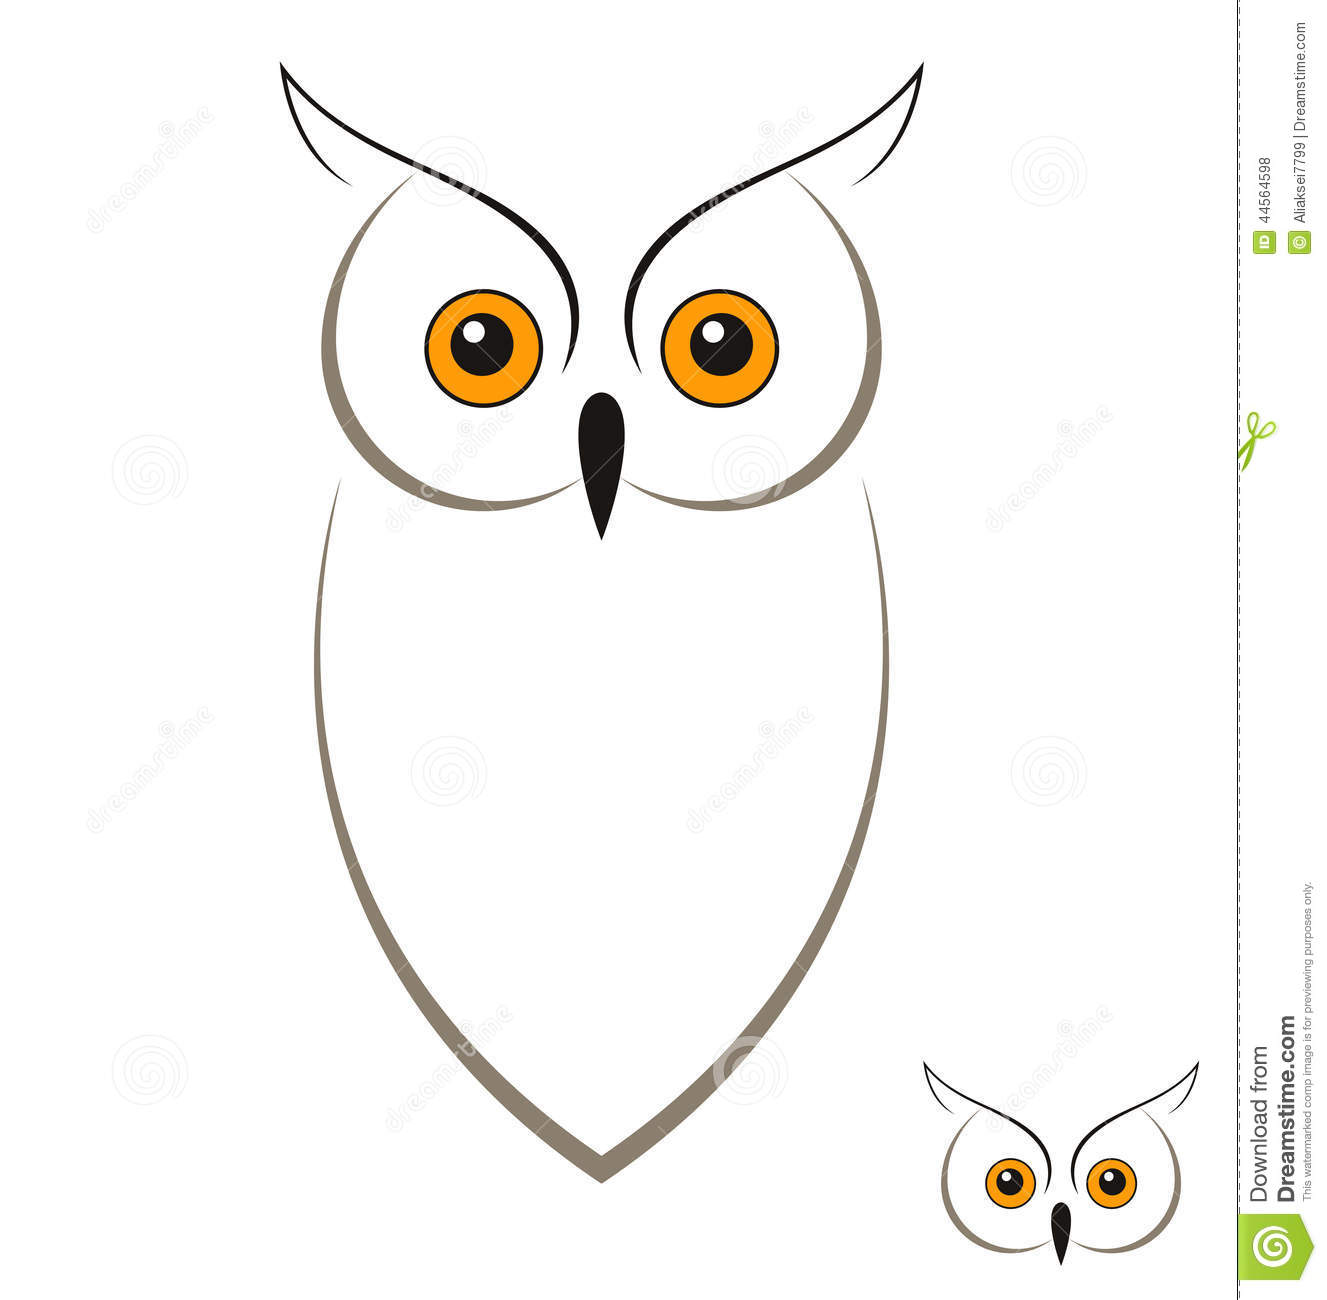 Stock Illustration Illustration Vector Hand Draw Doodles Cute Dog Smiling Isolated White Background Image70838312 likewise Stock Illustration Motivational Travel Poster Pineapple Label Grunge Texture Enjoy Summer Days Image52809365 likewise Stock Image Do Not Disturb Coffin Isolated White Sketch Illustration Image33305561 further Stock Illustration Owl Isolated Objects White Background Vector Illustration Eps Image44564598 likewise Vintage Logo. on summer vector graphics